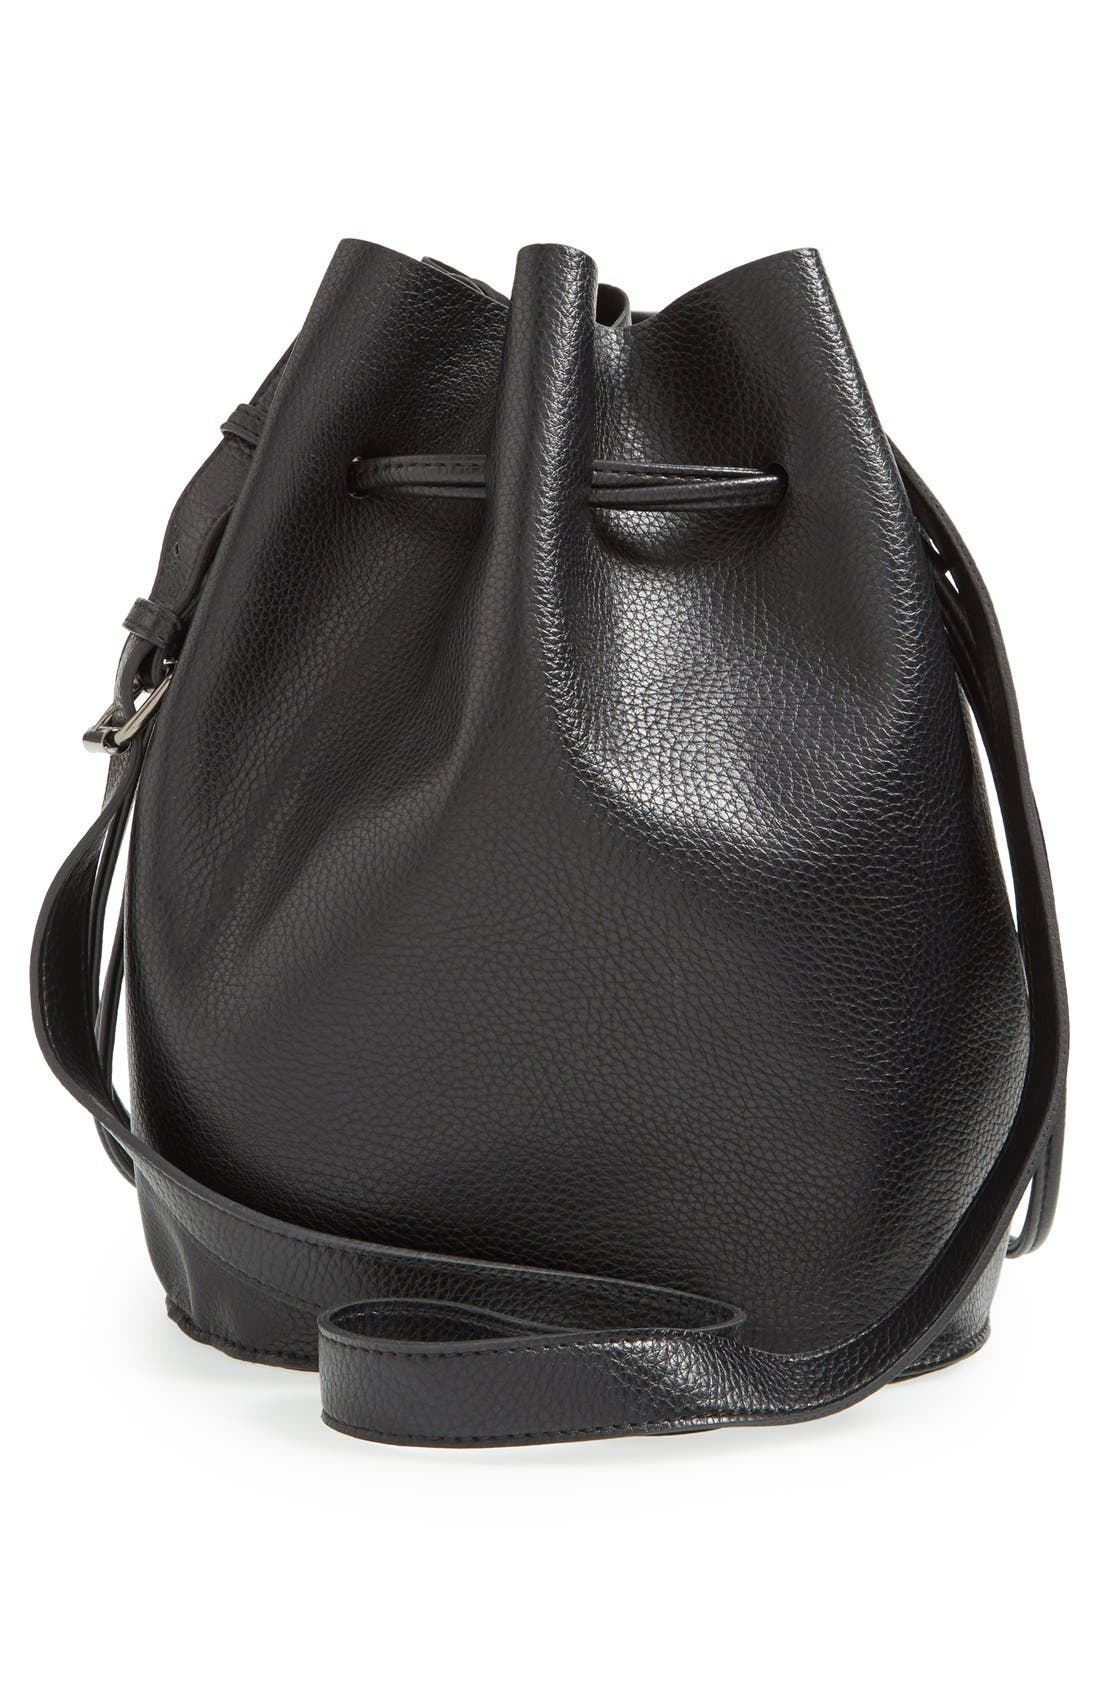 STREET LEVEL,                             Faux Leather Bucket Bag,                             Alternate thumbnail 6, color,                             001